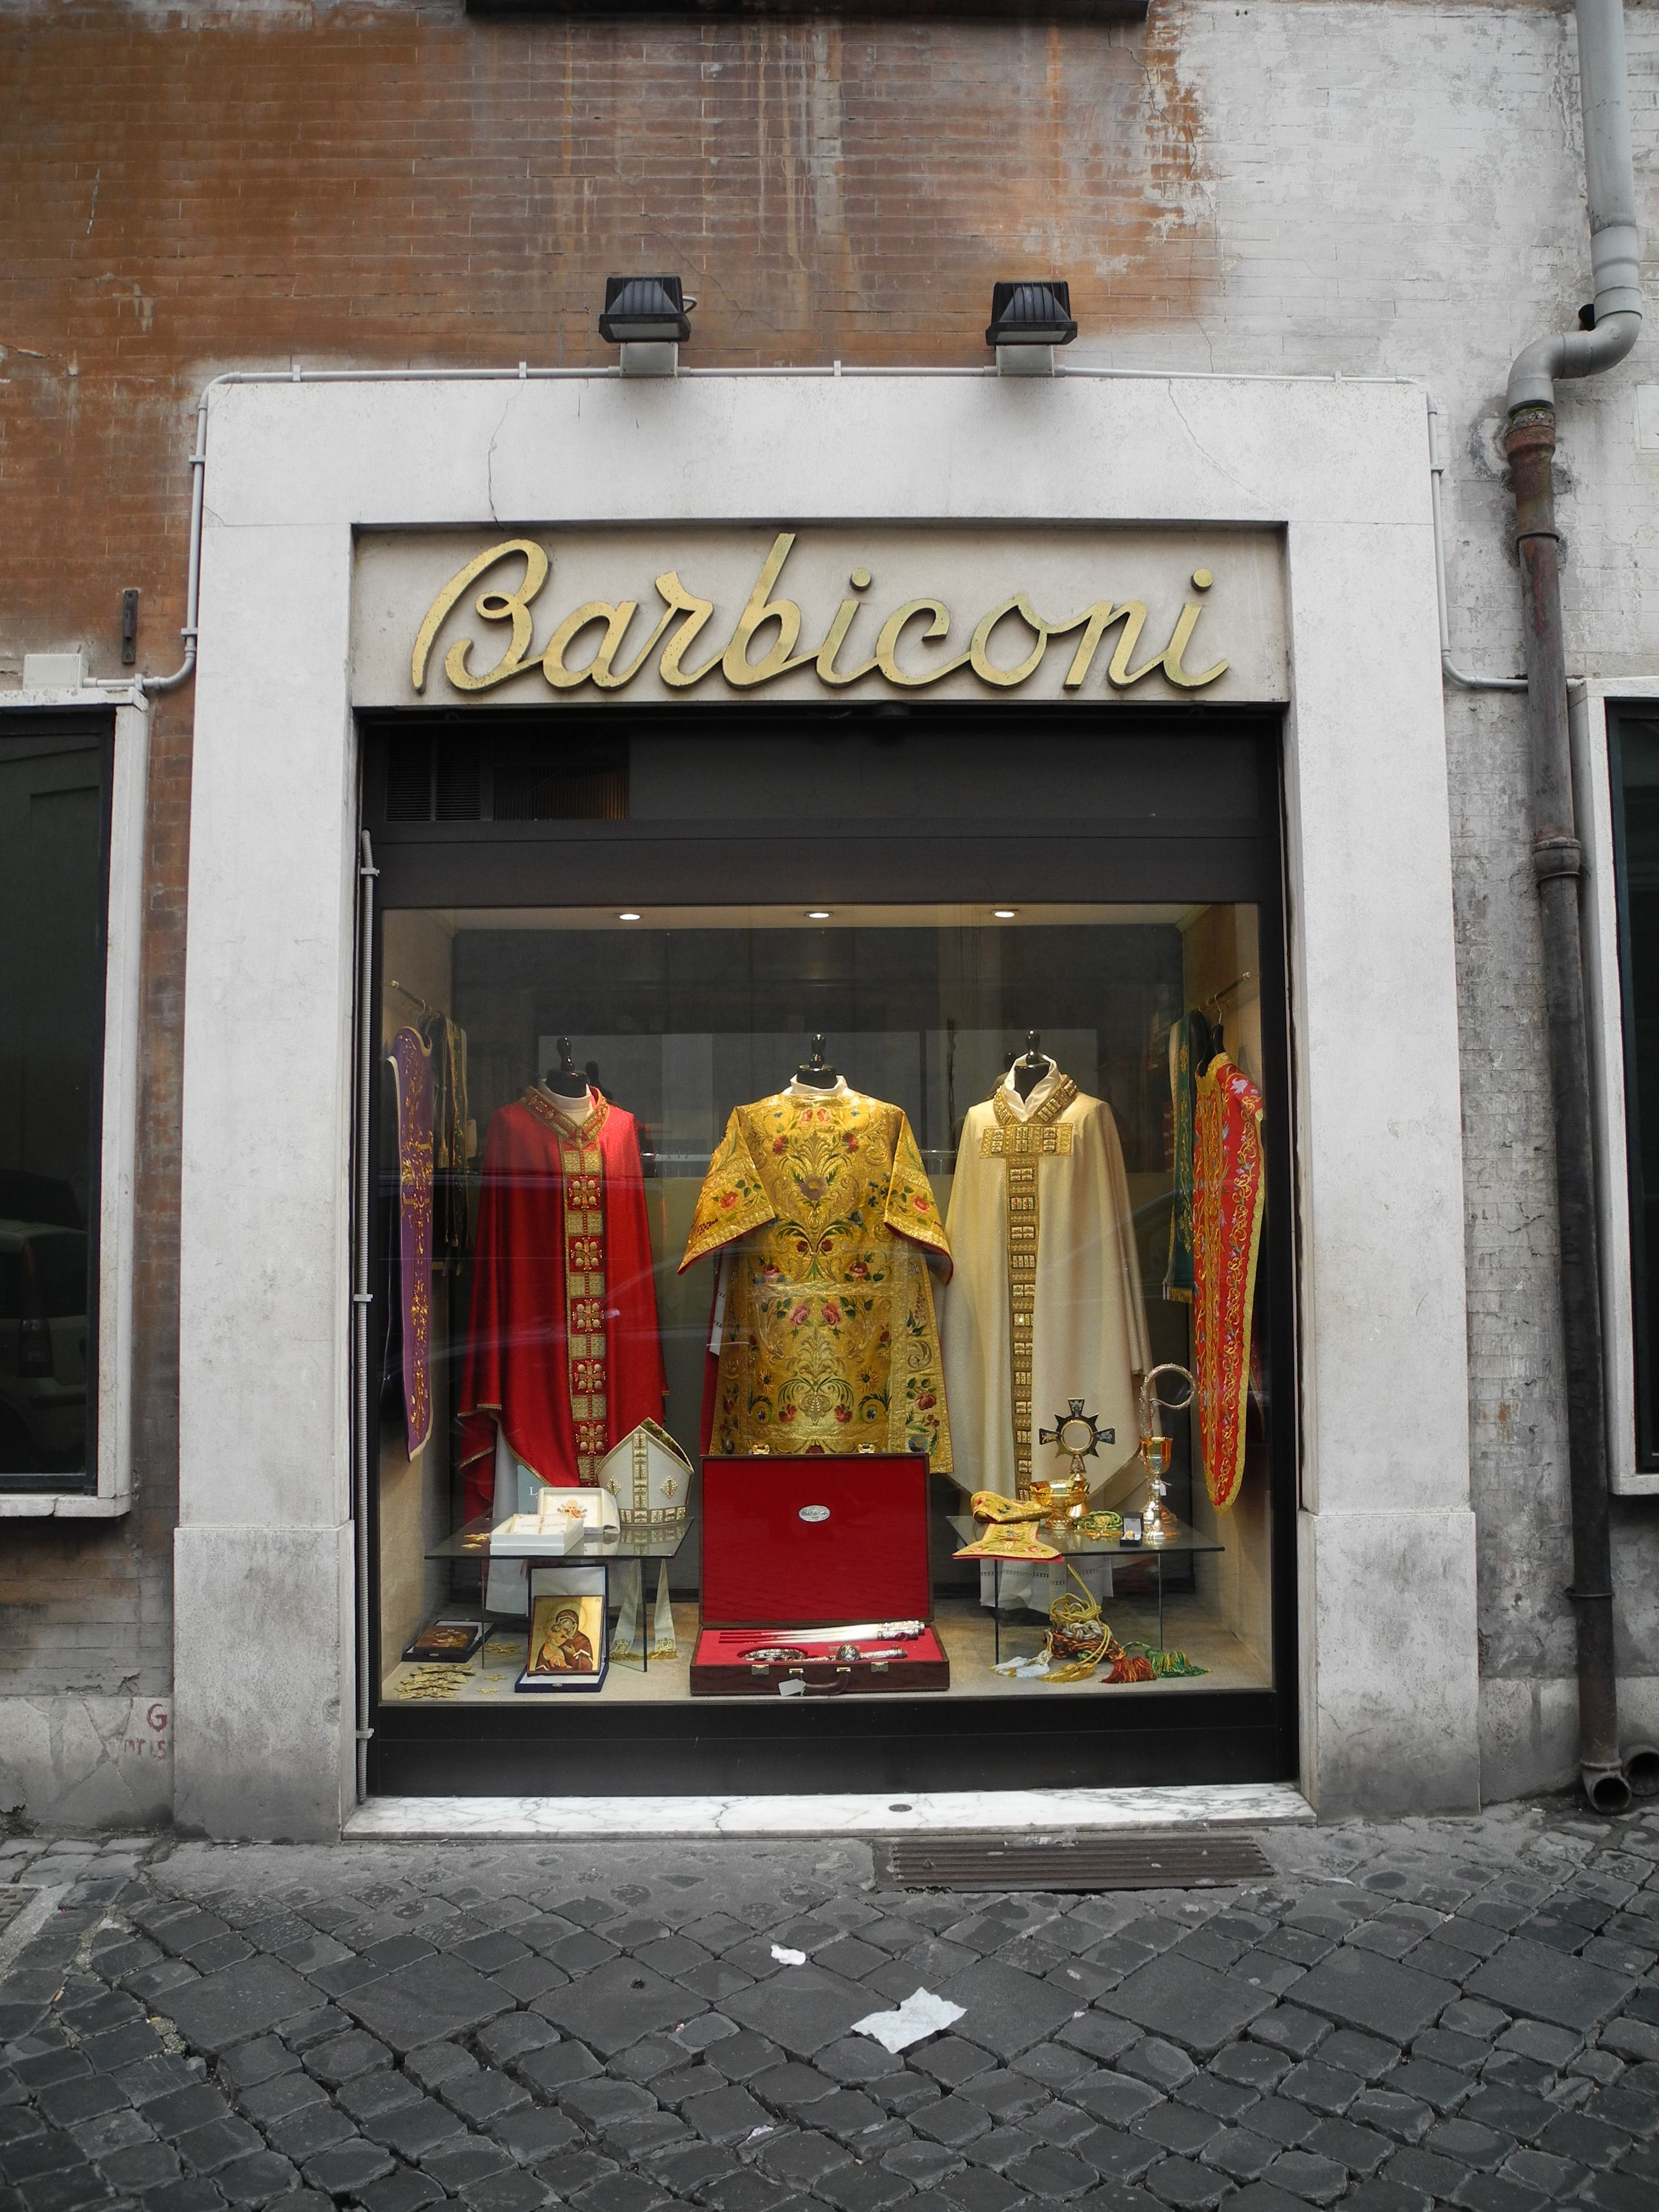 Another popular vestment shop in Rome: Barbiconi. (or Barbi's) https://lewisblayse.files.wordpress.com/2013/06/barbies3.jpg